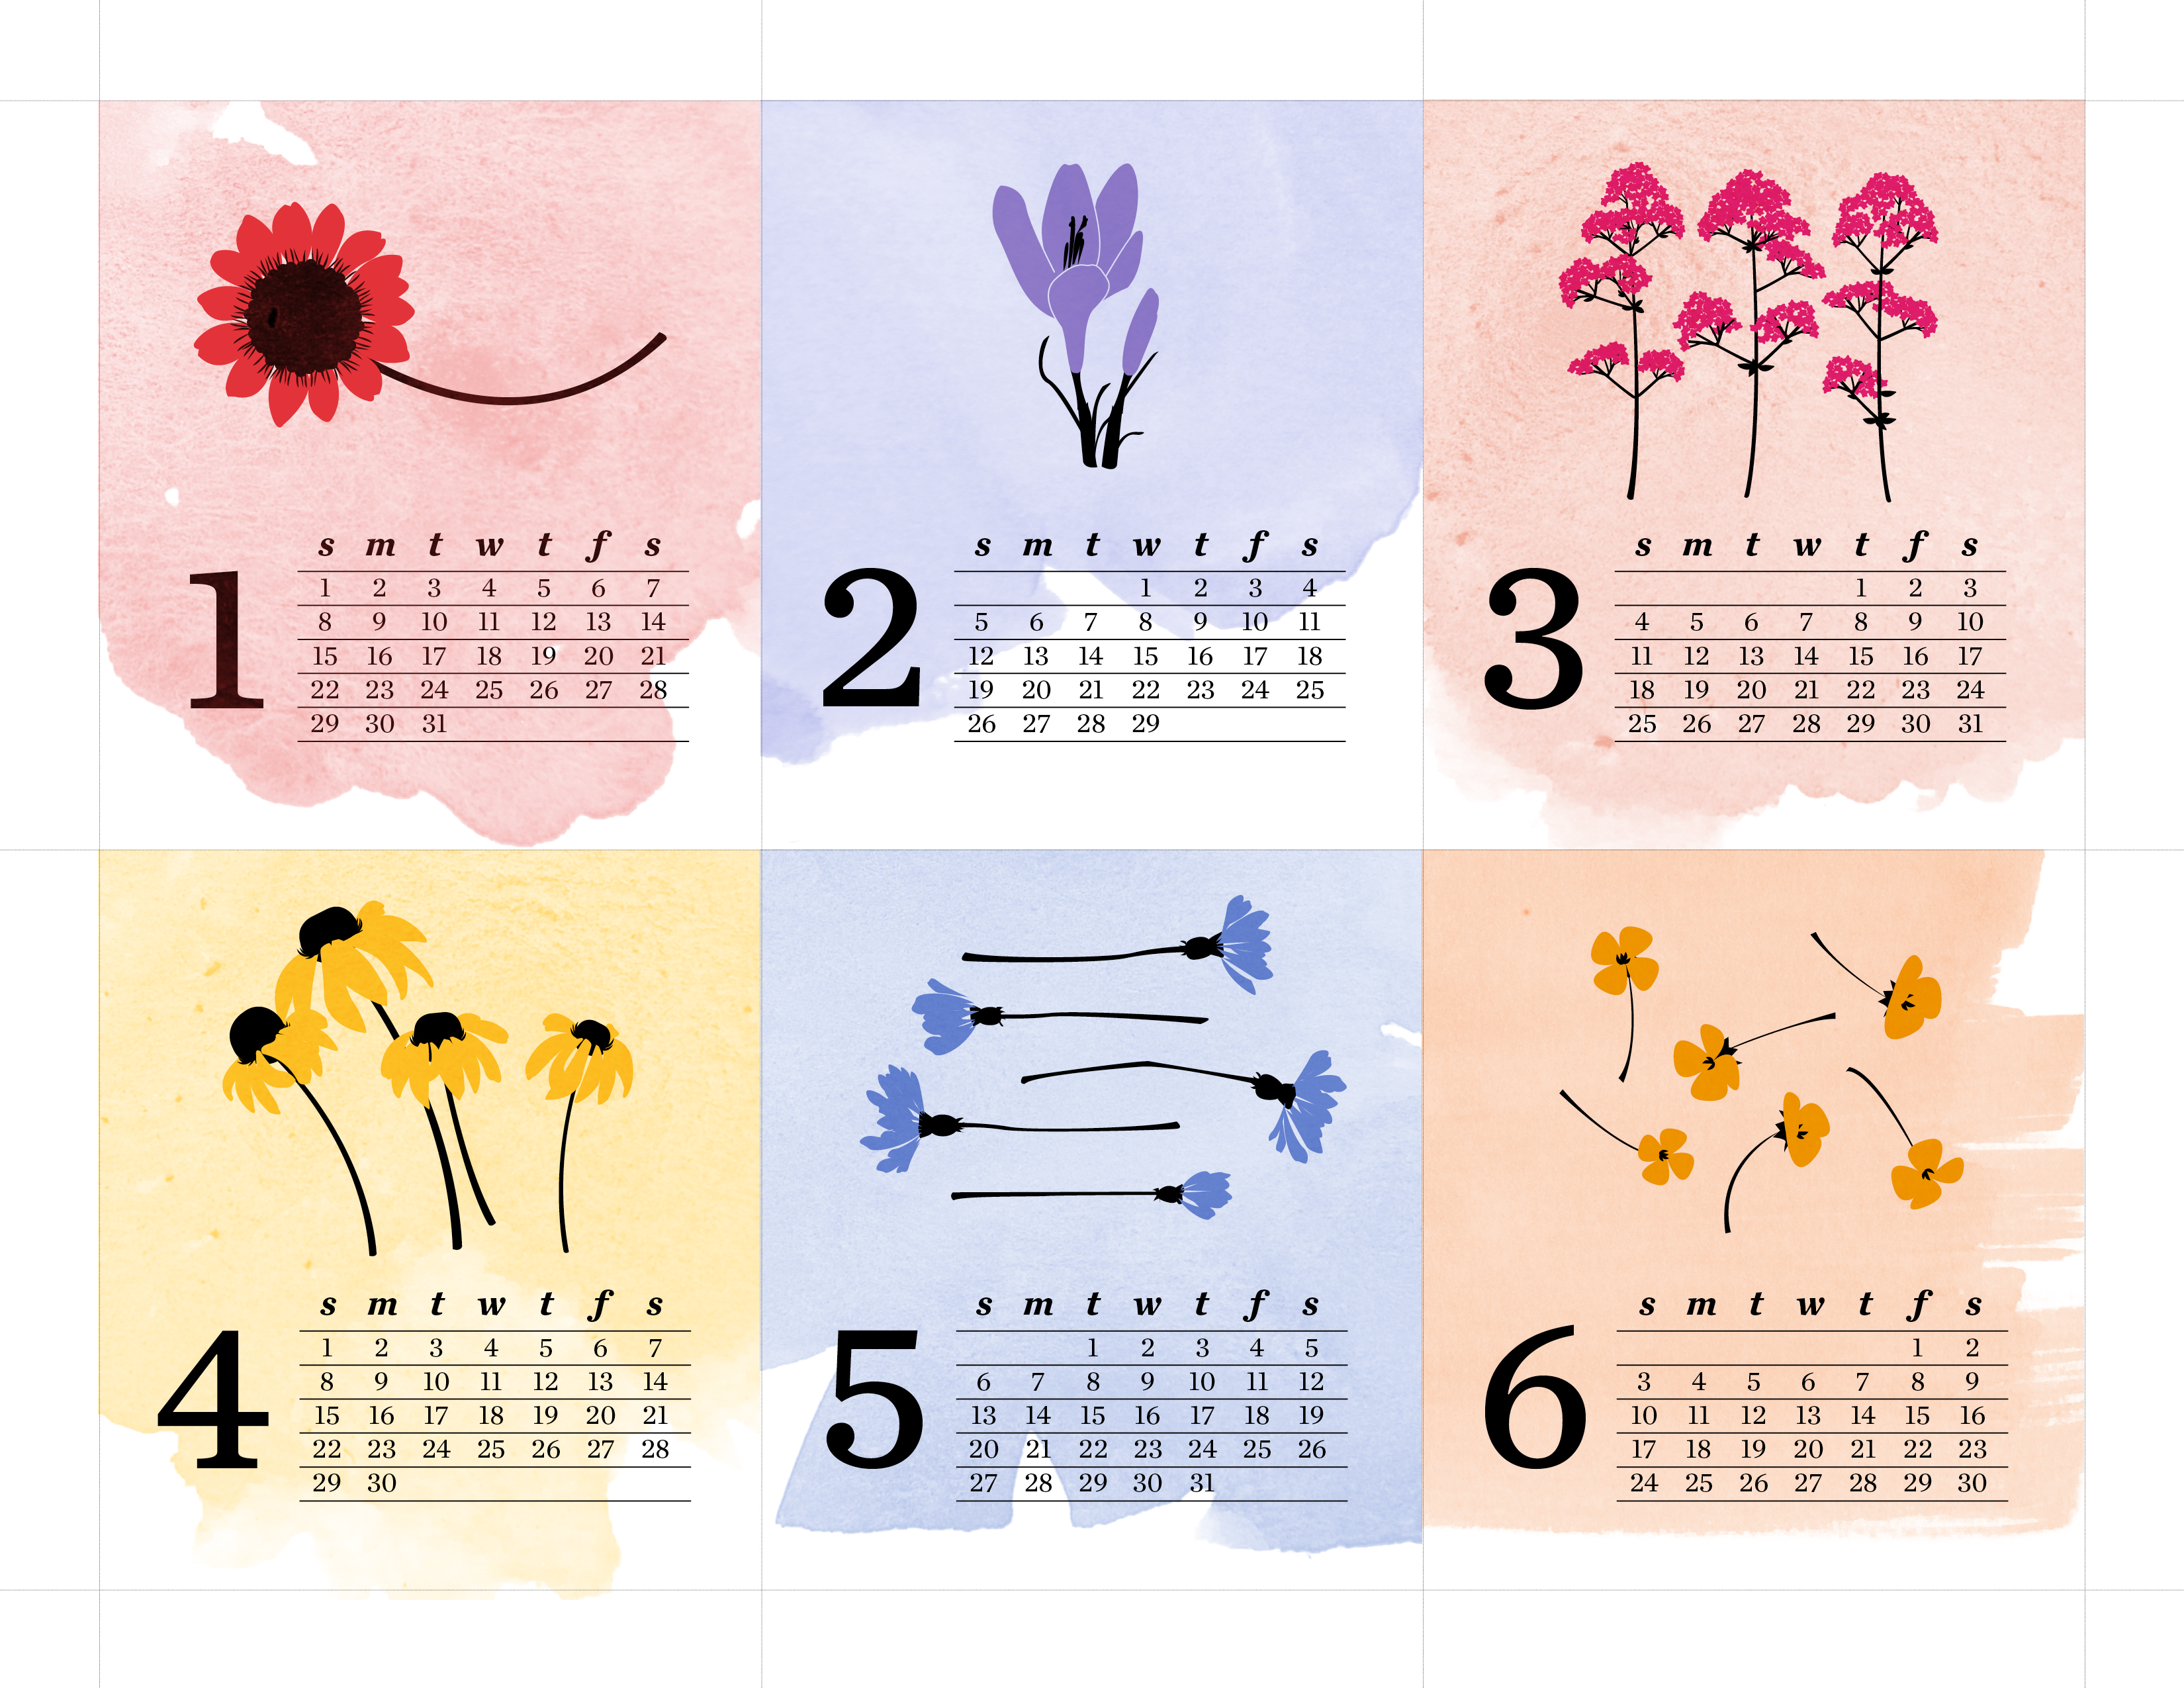 jeanniejeannie.comFree Downloadable 2012 Calendar: The Wildflower ...